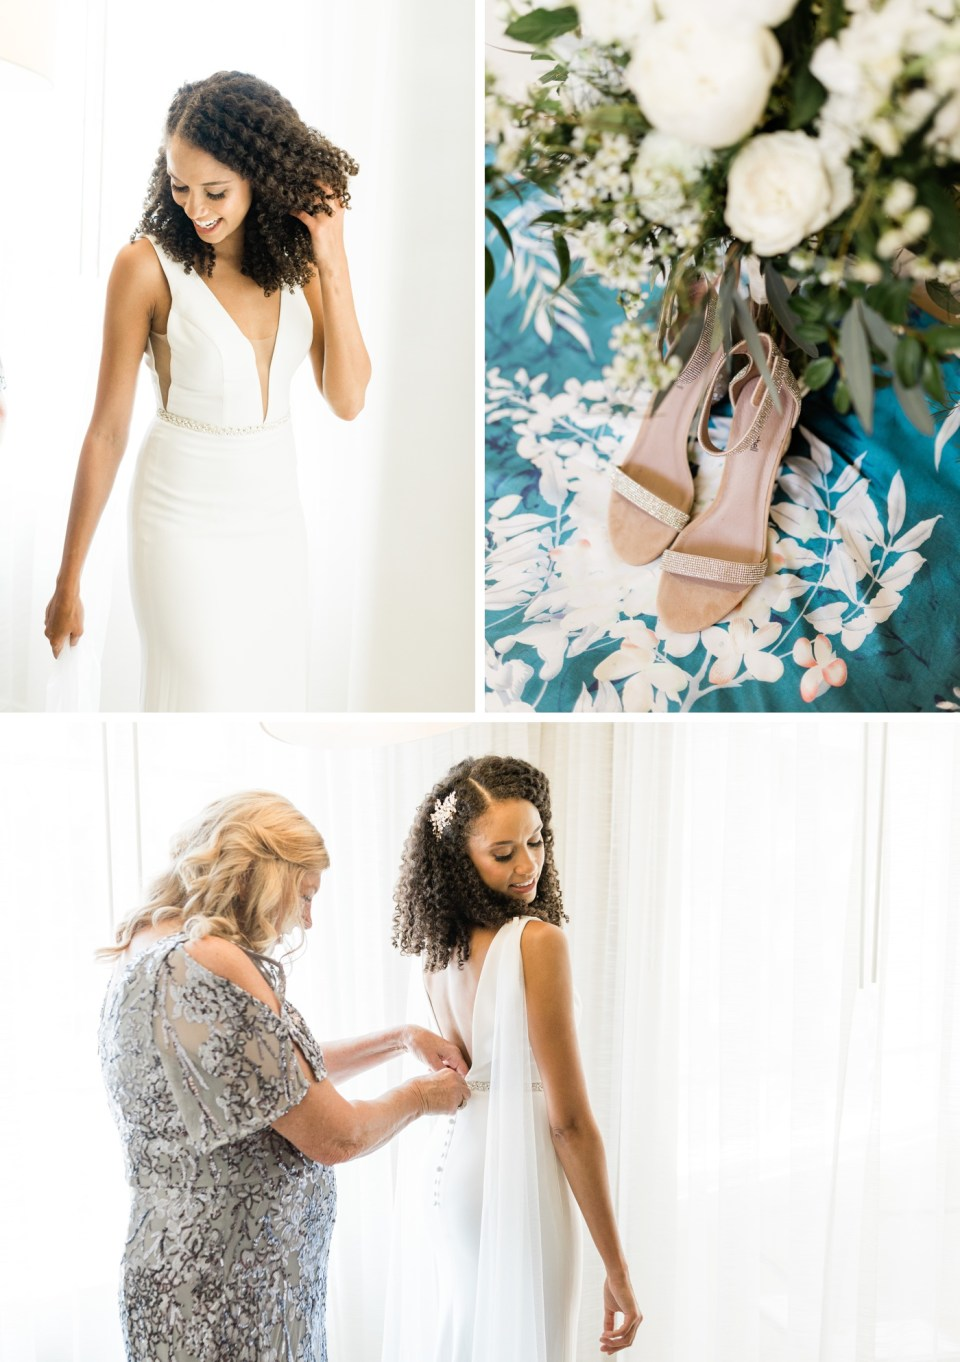 Bride in Ryder gown by Made With Love bridal